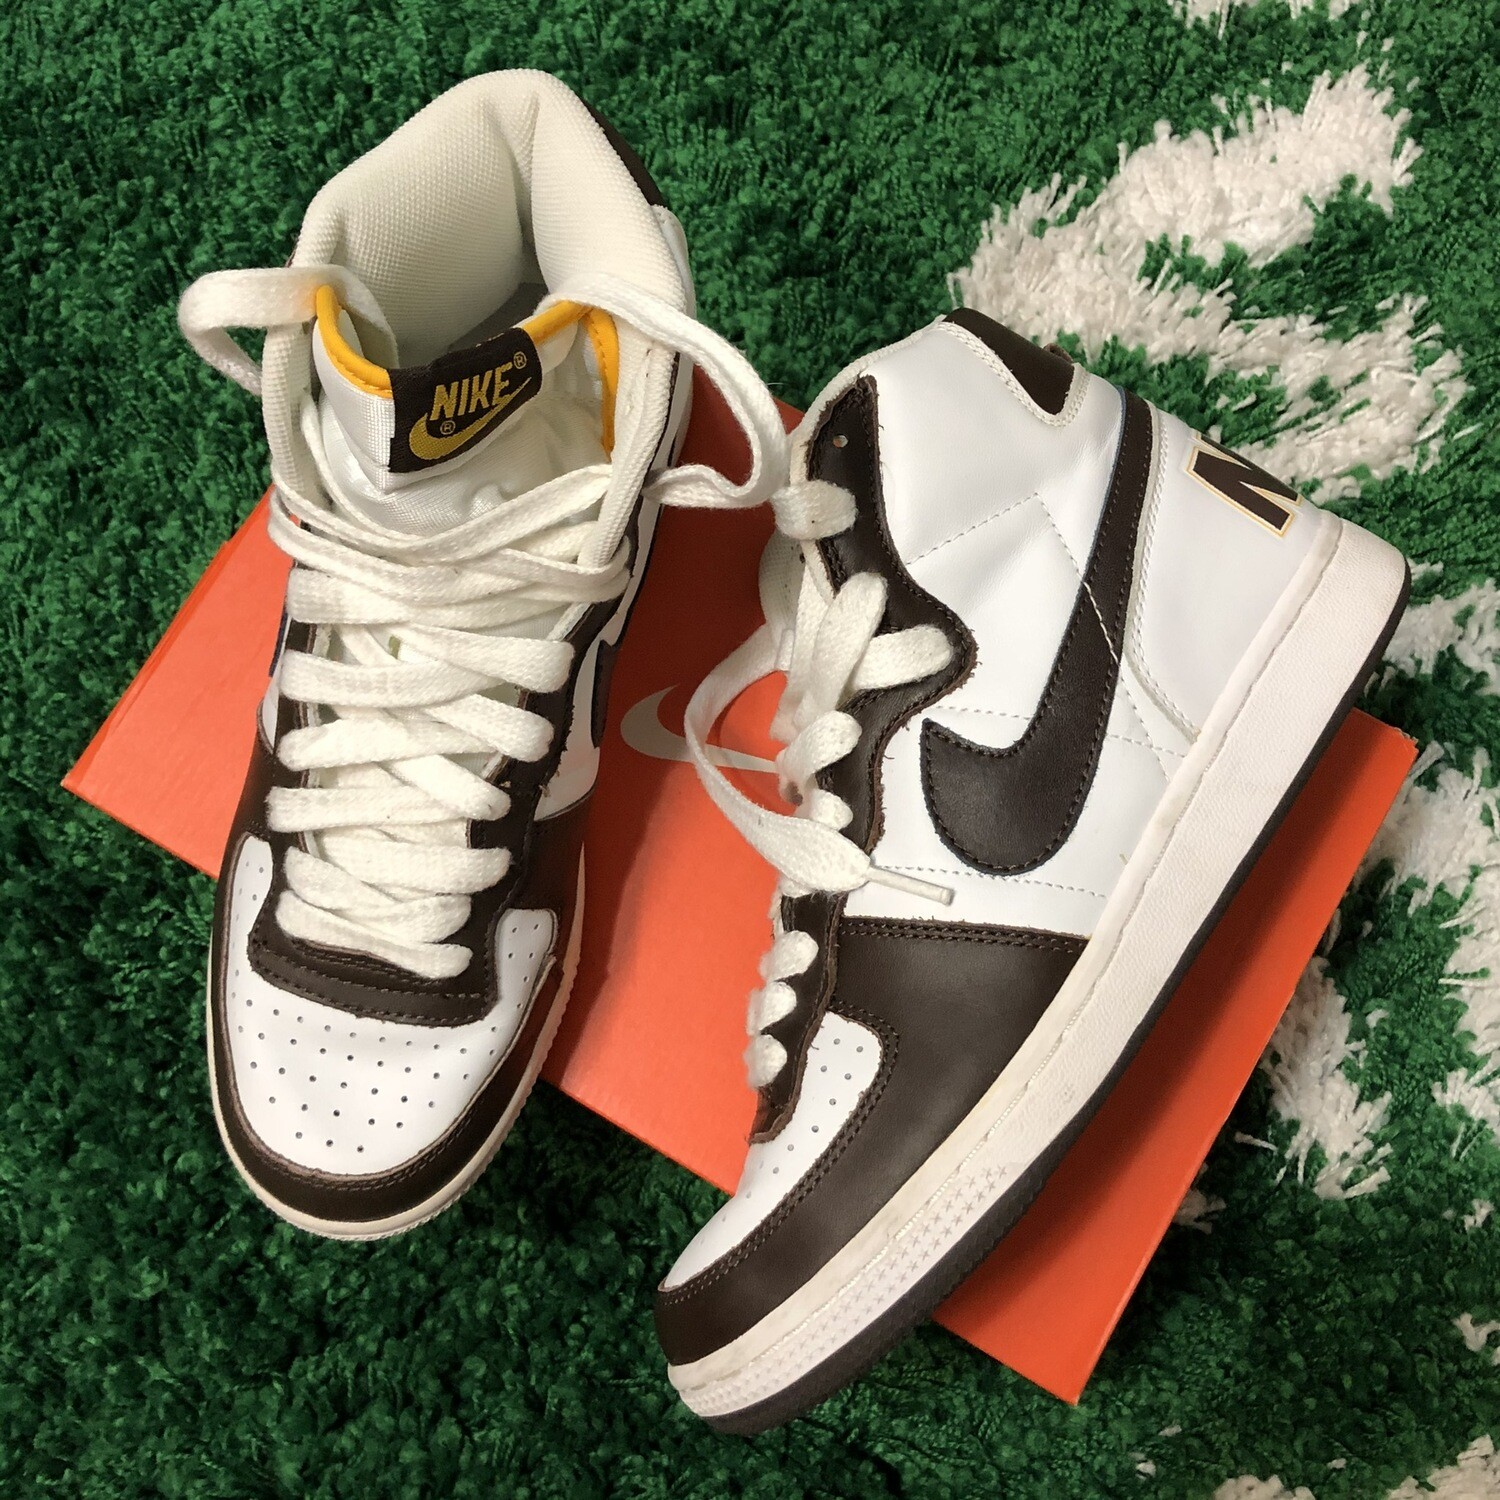 Nike Terminator White And Brown Size 8